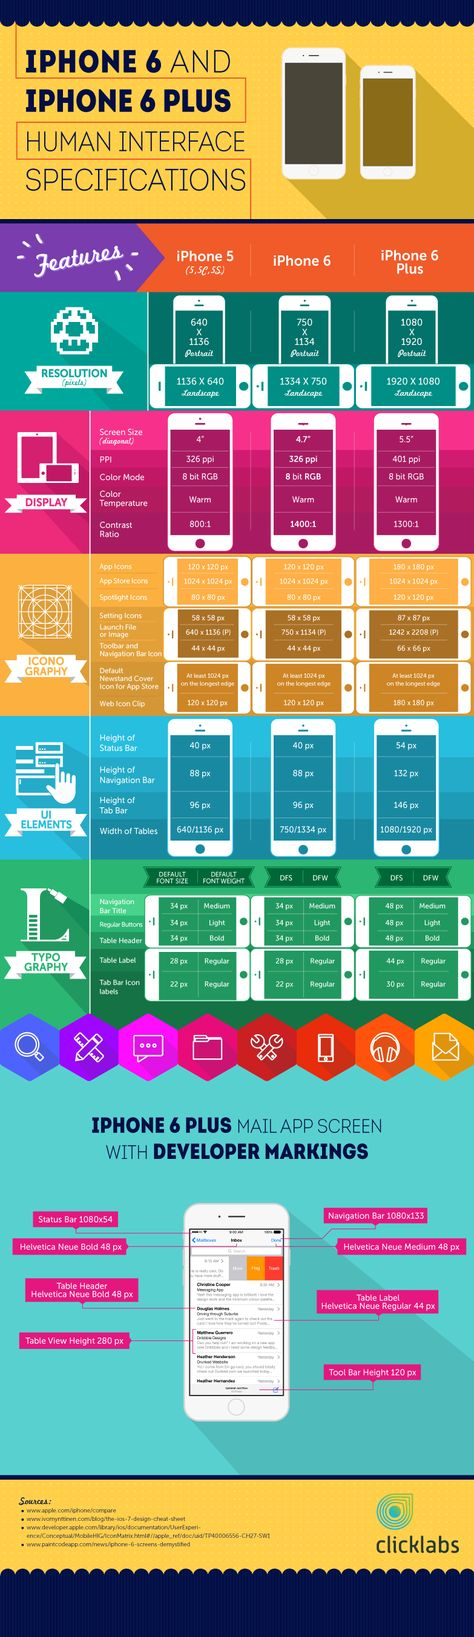 iPhone 6 template PSD | Cheat sheet for designers looking for iPhone 6 template in form of a downloadable Infographic - Click Labs